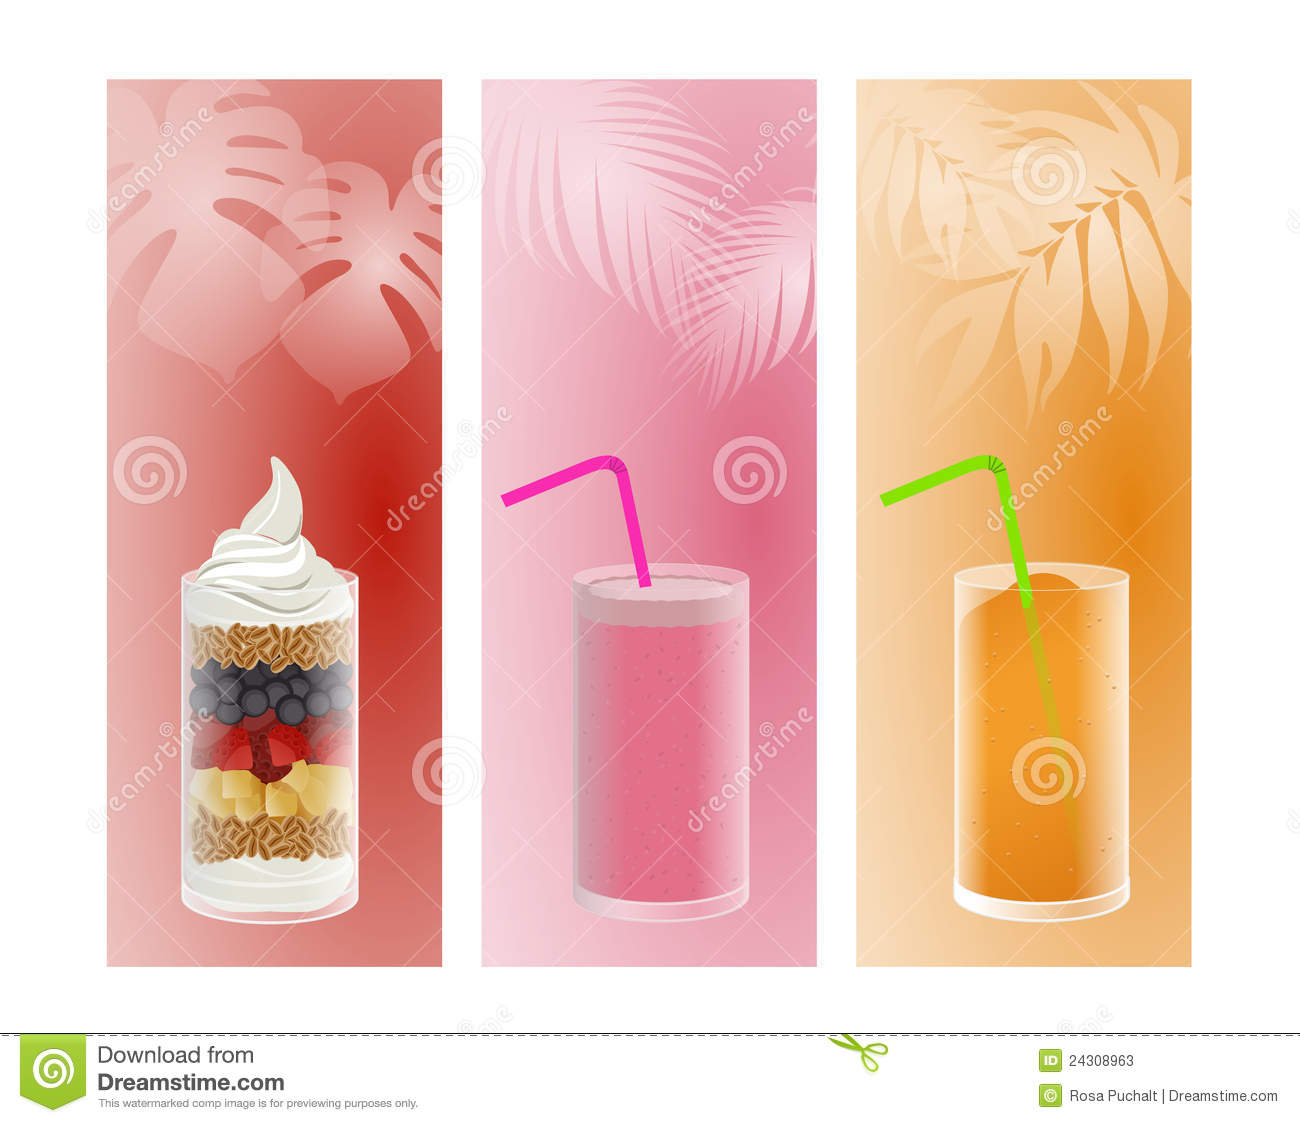 Fruit, smoothie and ice